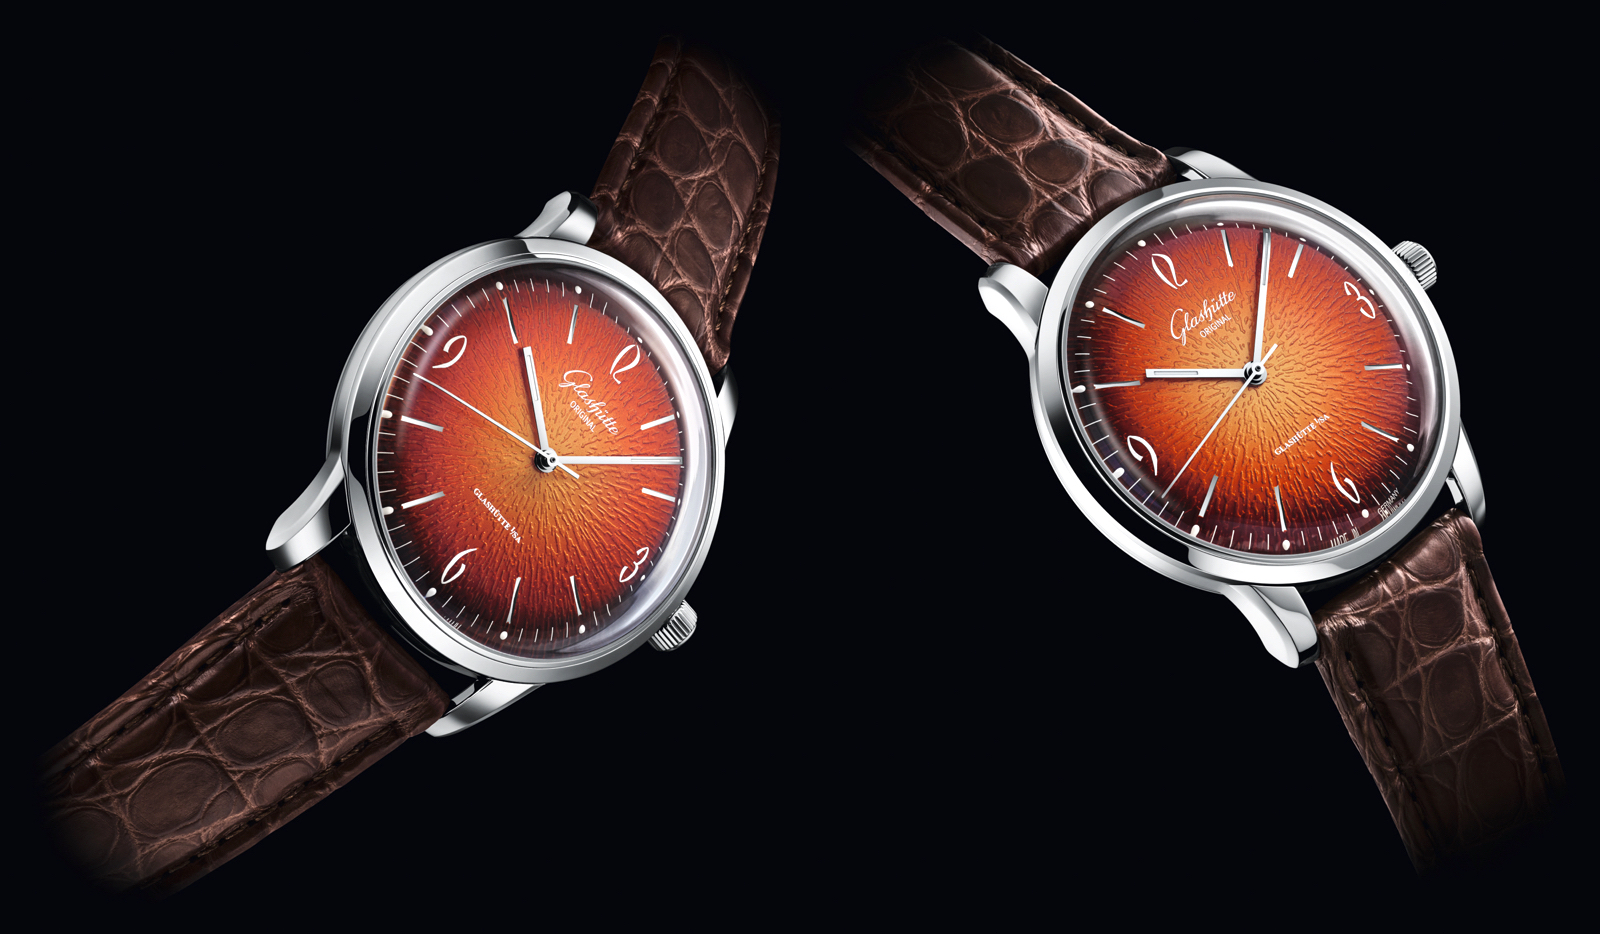 Glashütte Original Sixties 2019 Sixties Iconic